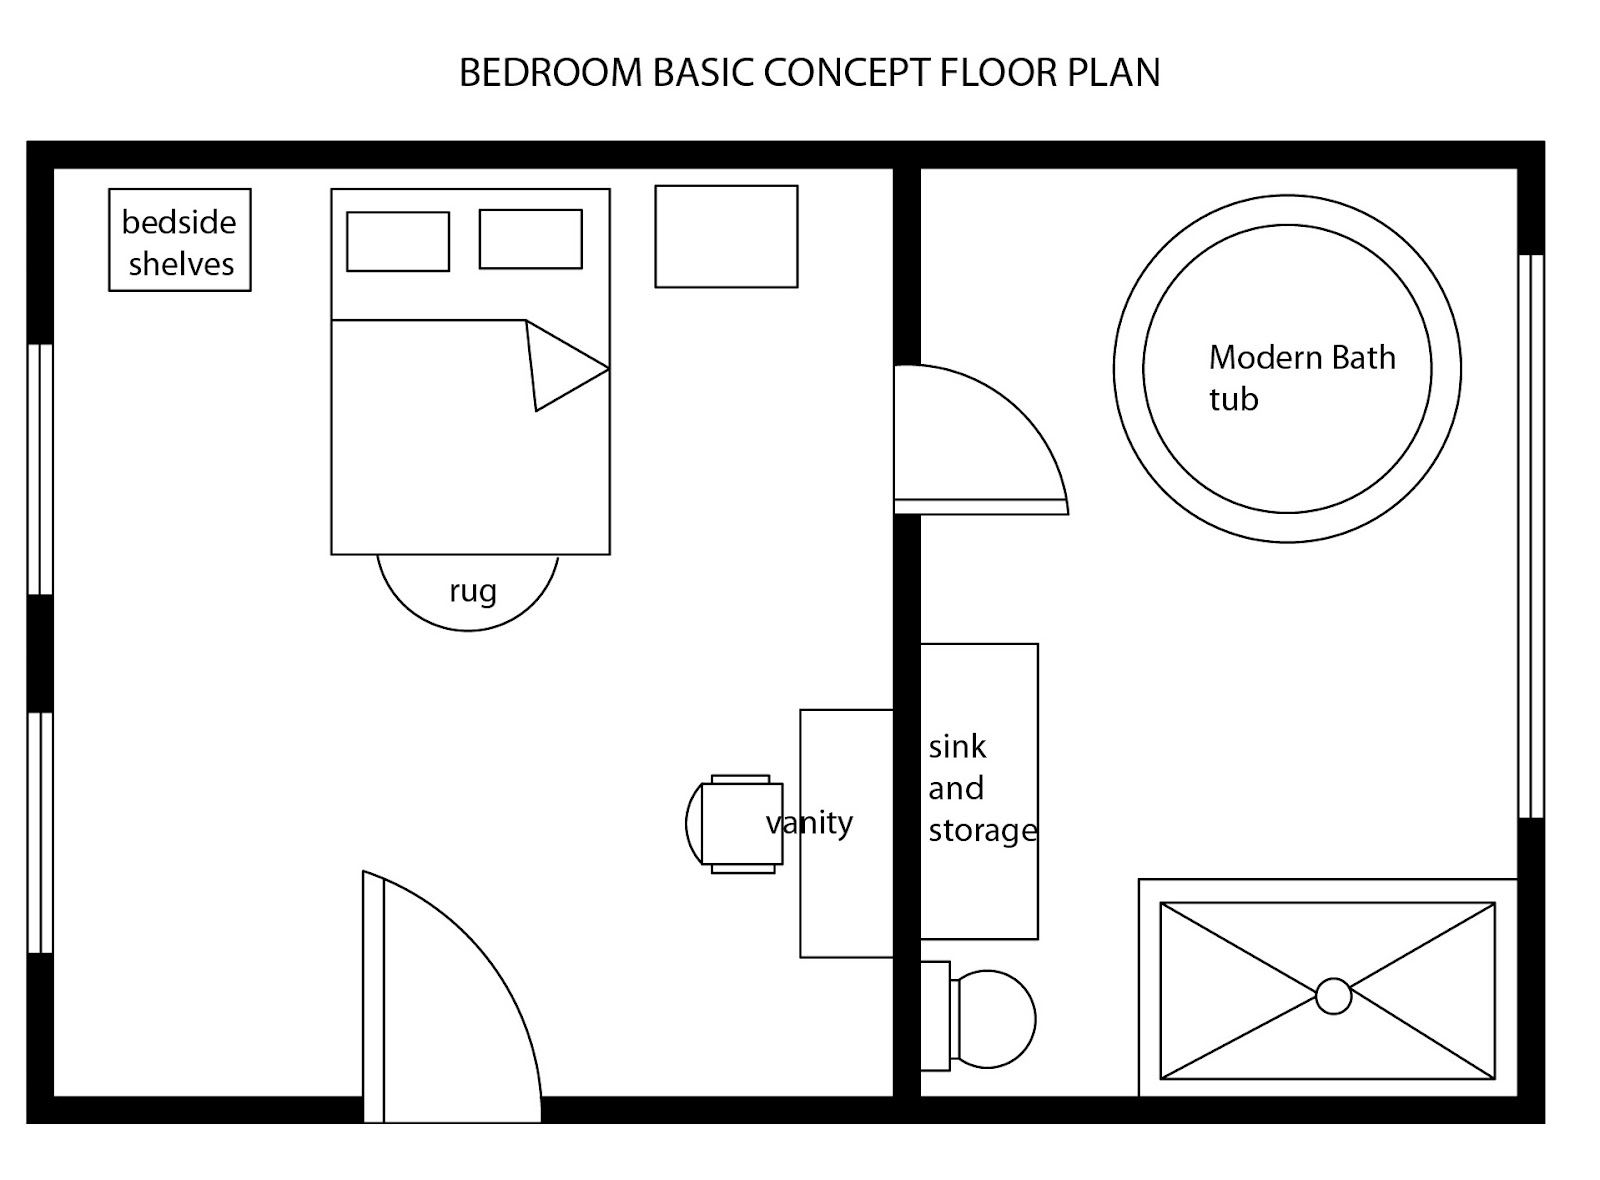 Design floor plan for bathroom home decorating ideasbathroom interior design - Floor plans for a bedroom house decor ...